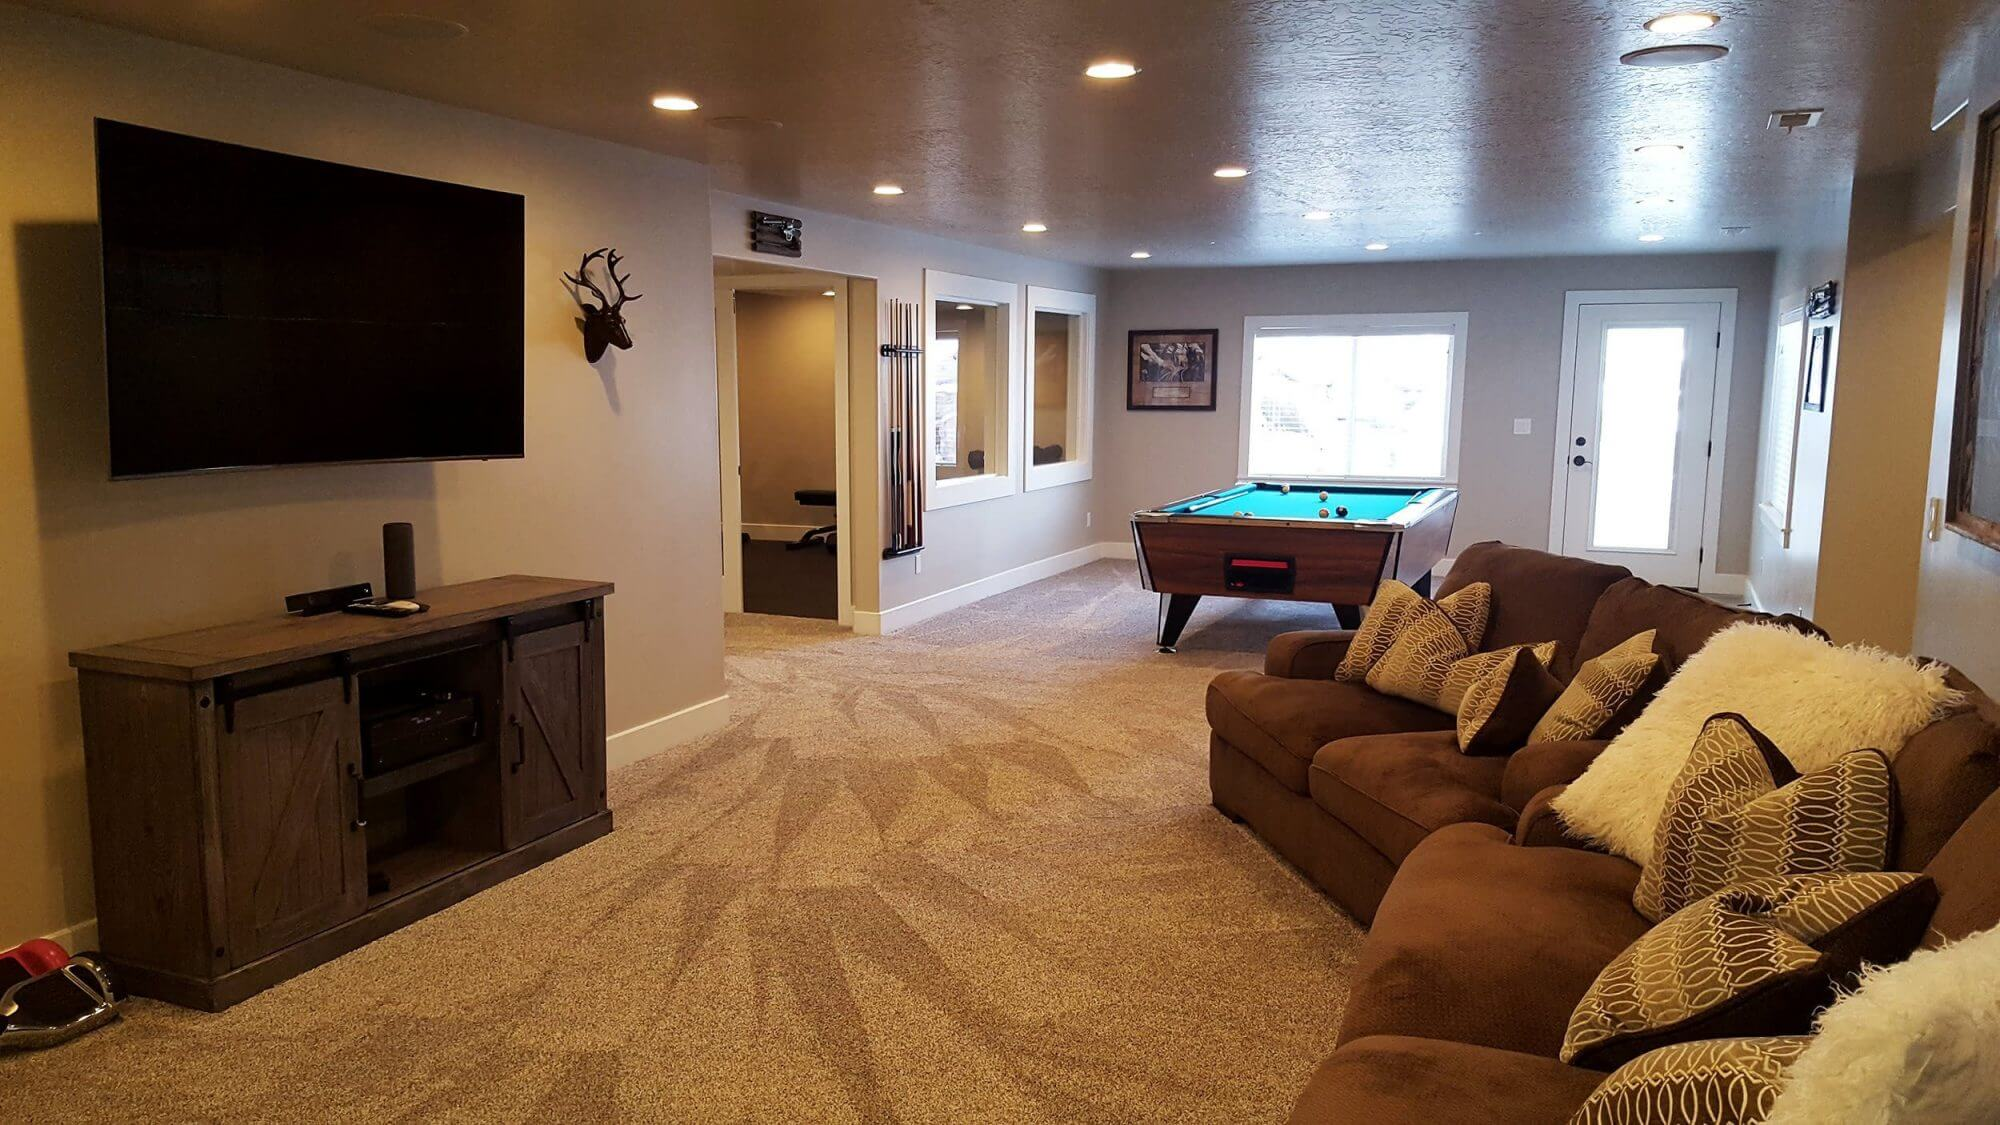 A newly finished basement done by aspire construction in utah county